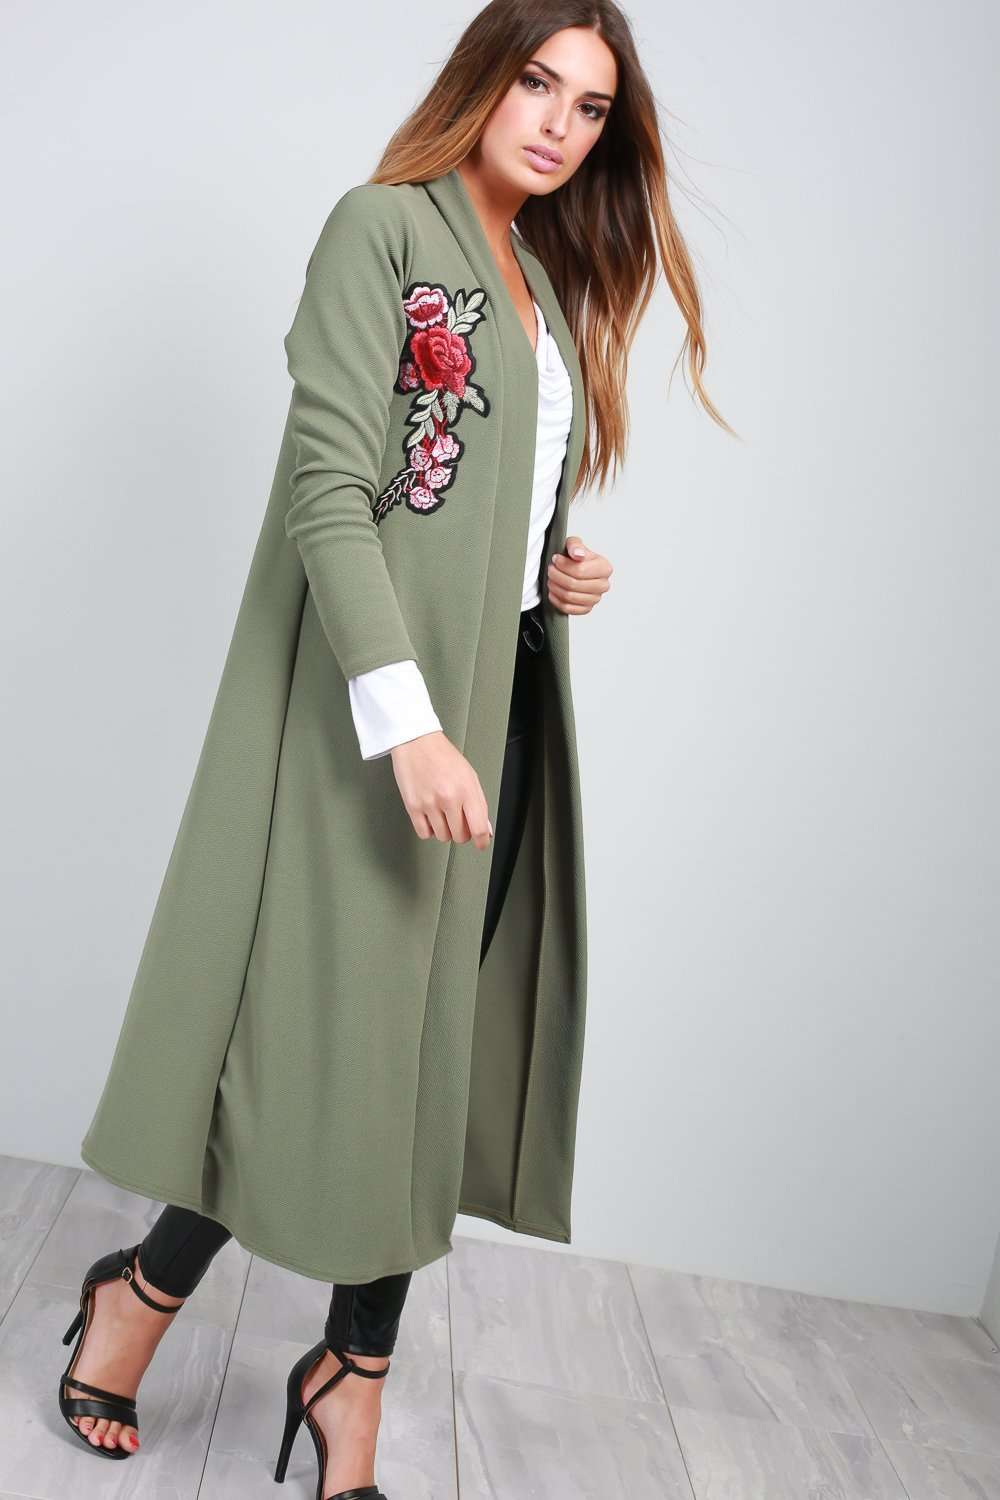 Long Sleeve Floral Embroidered Floaty Jacket - bejealous-com